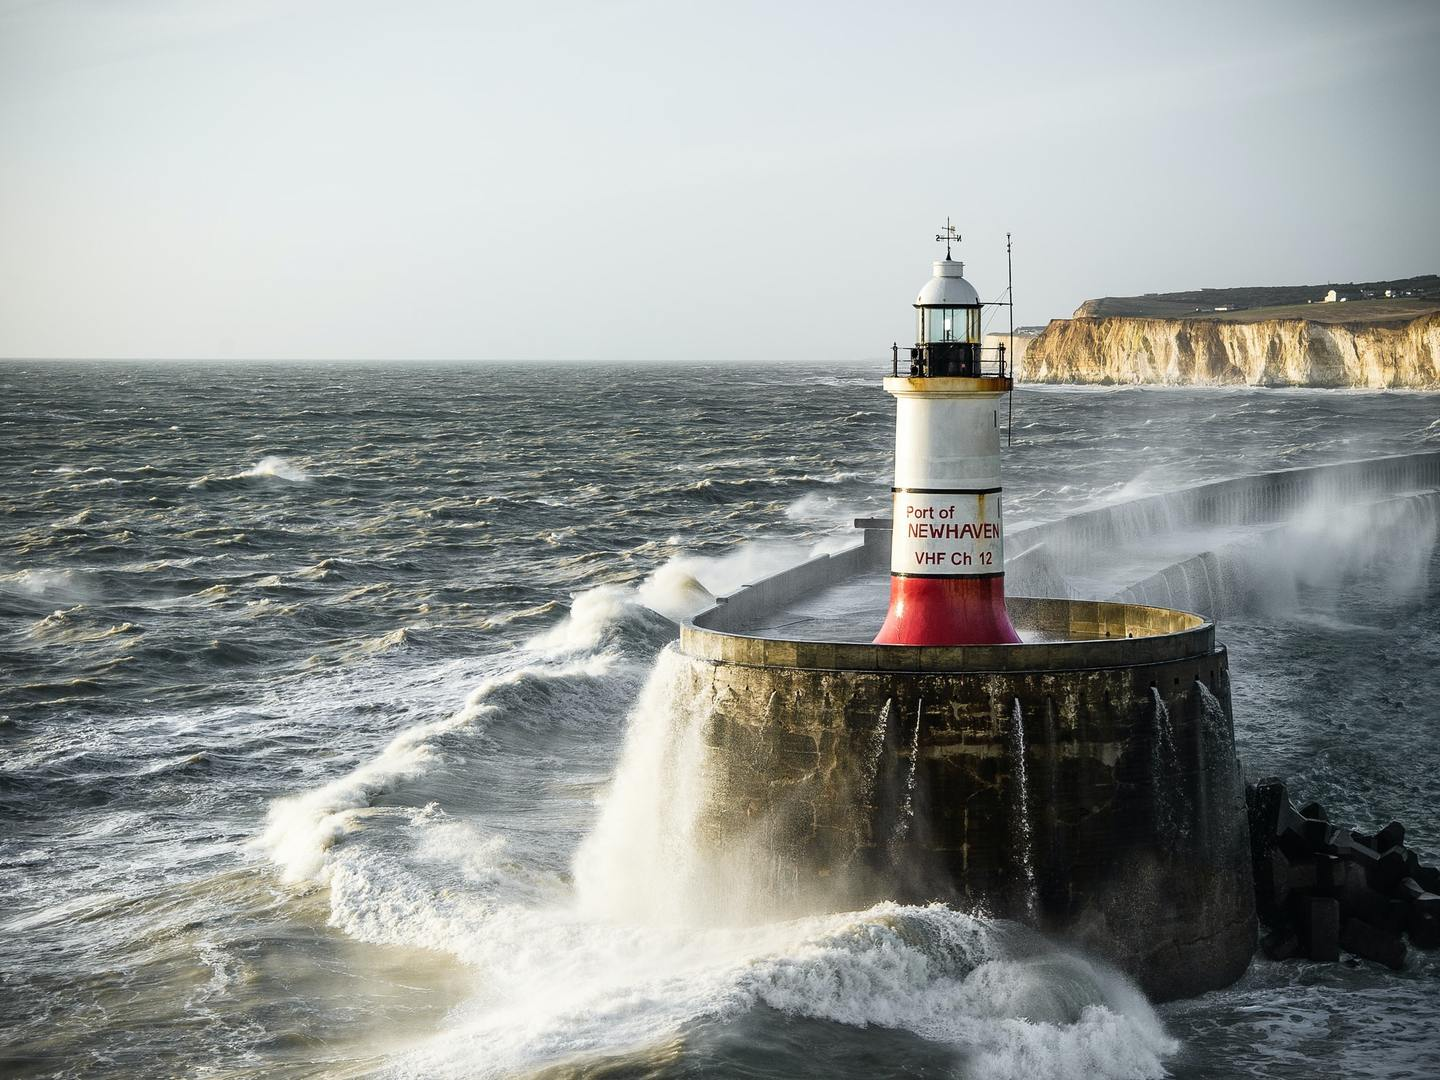 A lighthouse in the port of Newhaven, UK